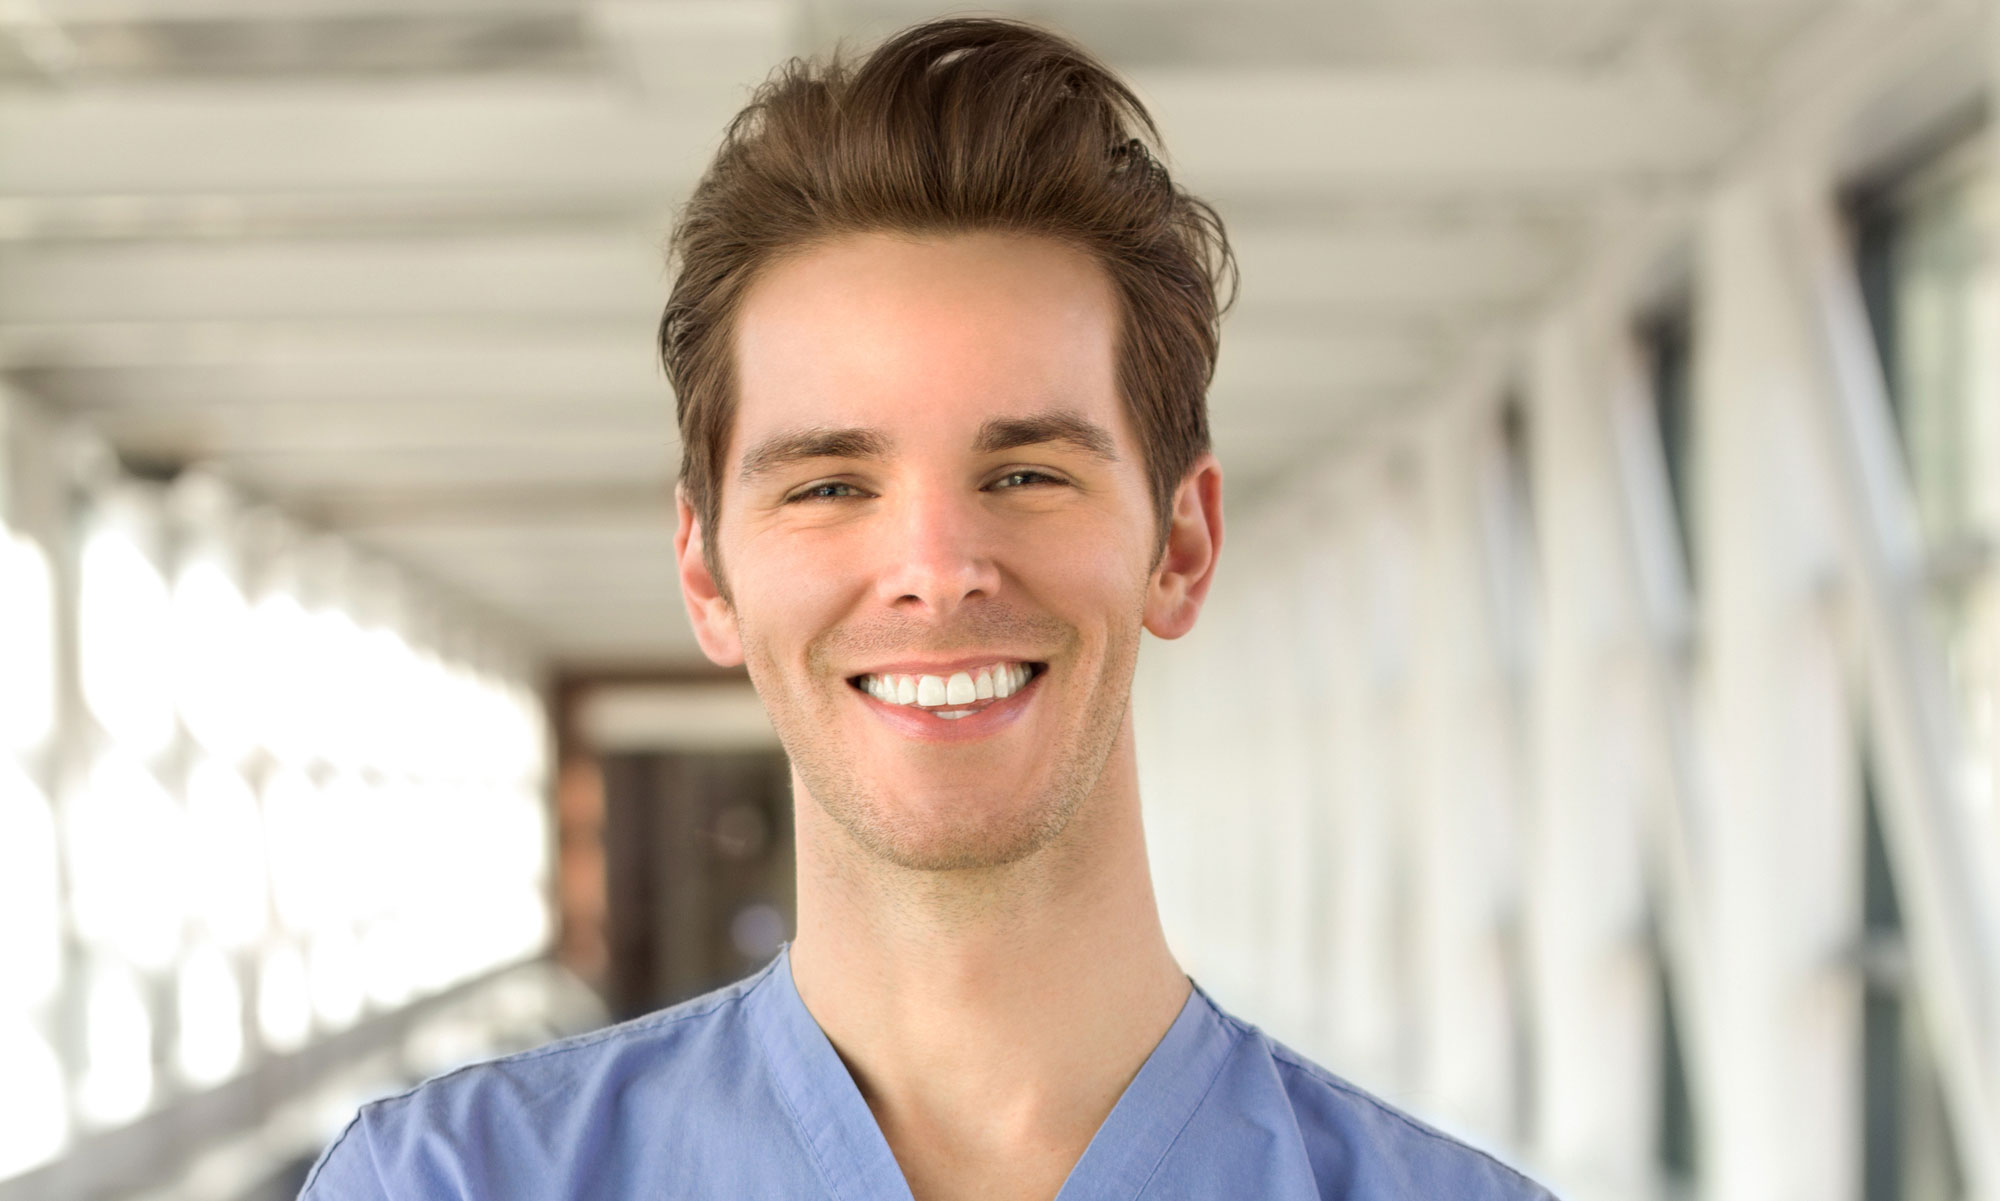 Smiling male nurse